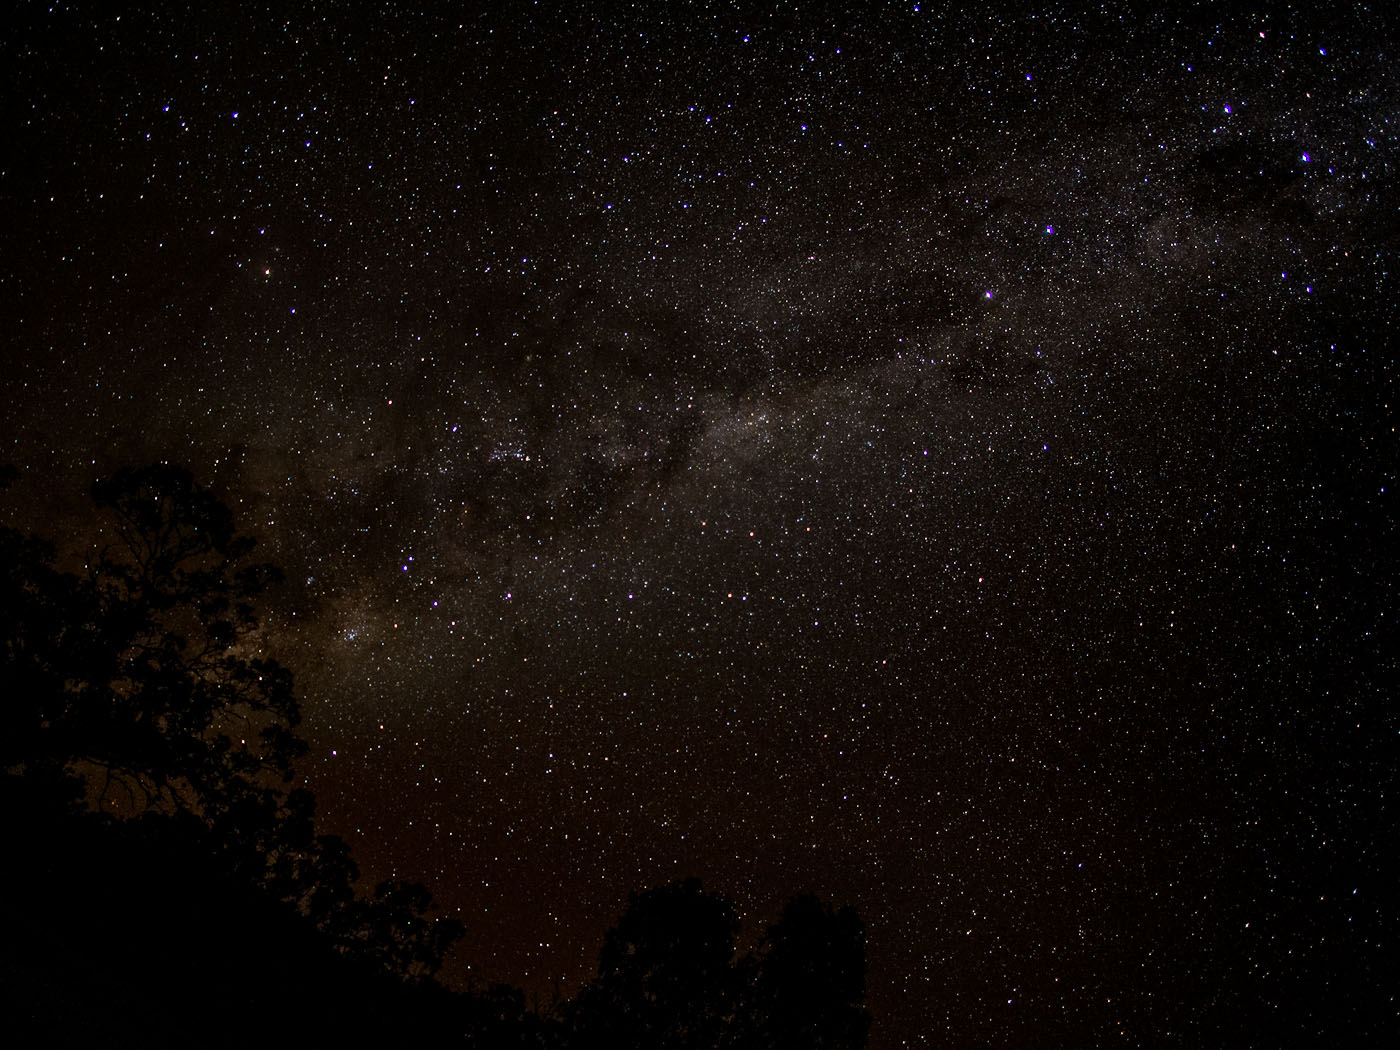 Milky Way 12mm at f/2.0 ISO 1600 20secs